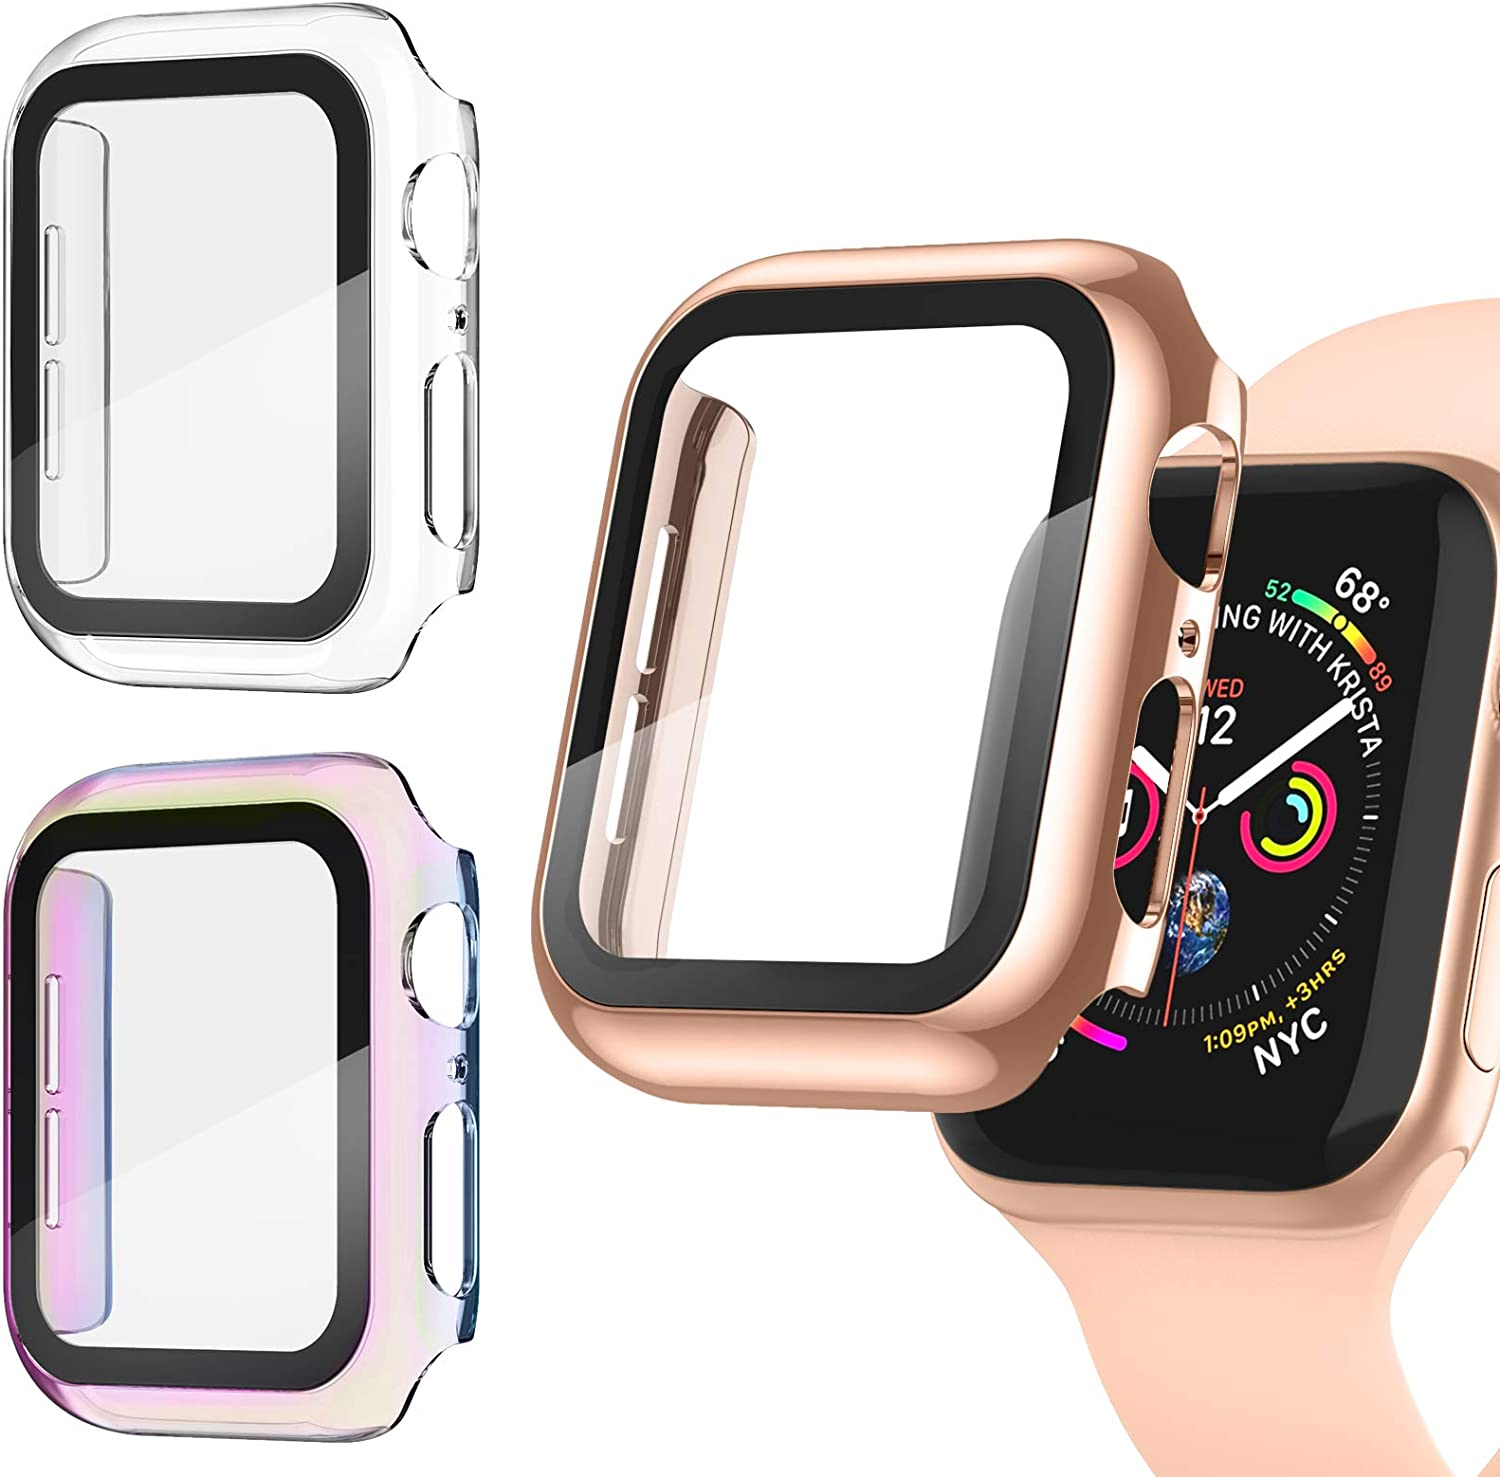 Recoppa [3 Pack] Apple Watch case with Screen Protector for Apple Watch 40mm Series 6/5/4/SE, Full Hard Cover Ultra-Thin Bumper HD Clear Protective Film Scratch Resistant for Women Men iWatch